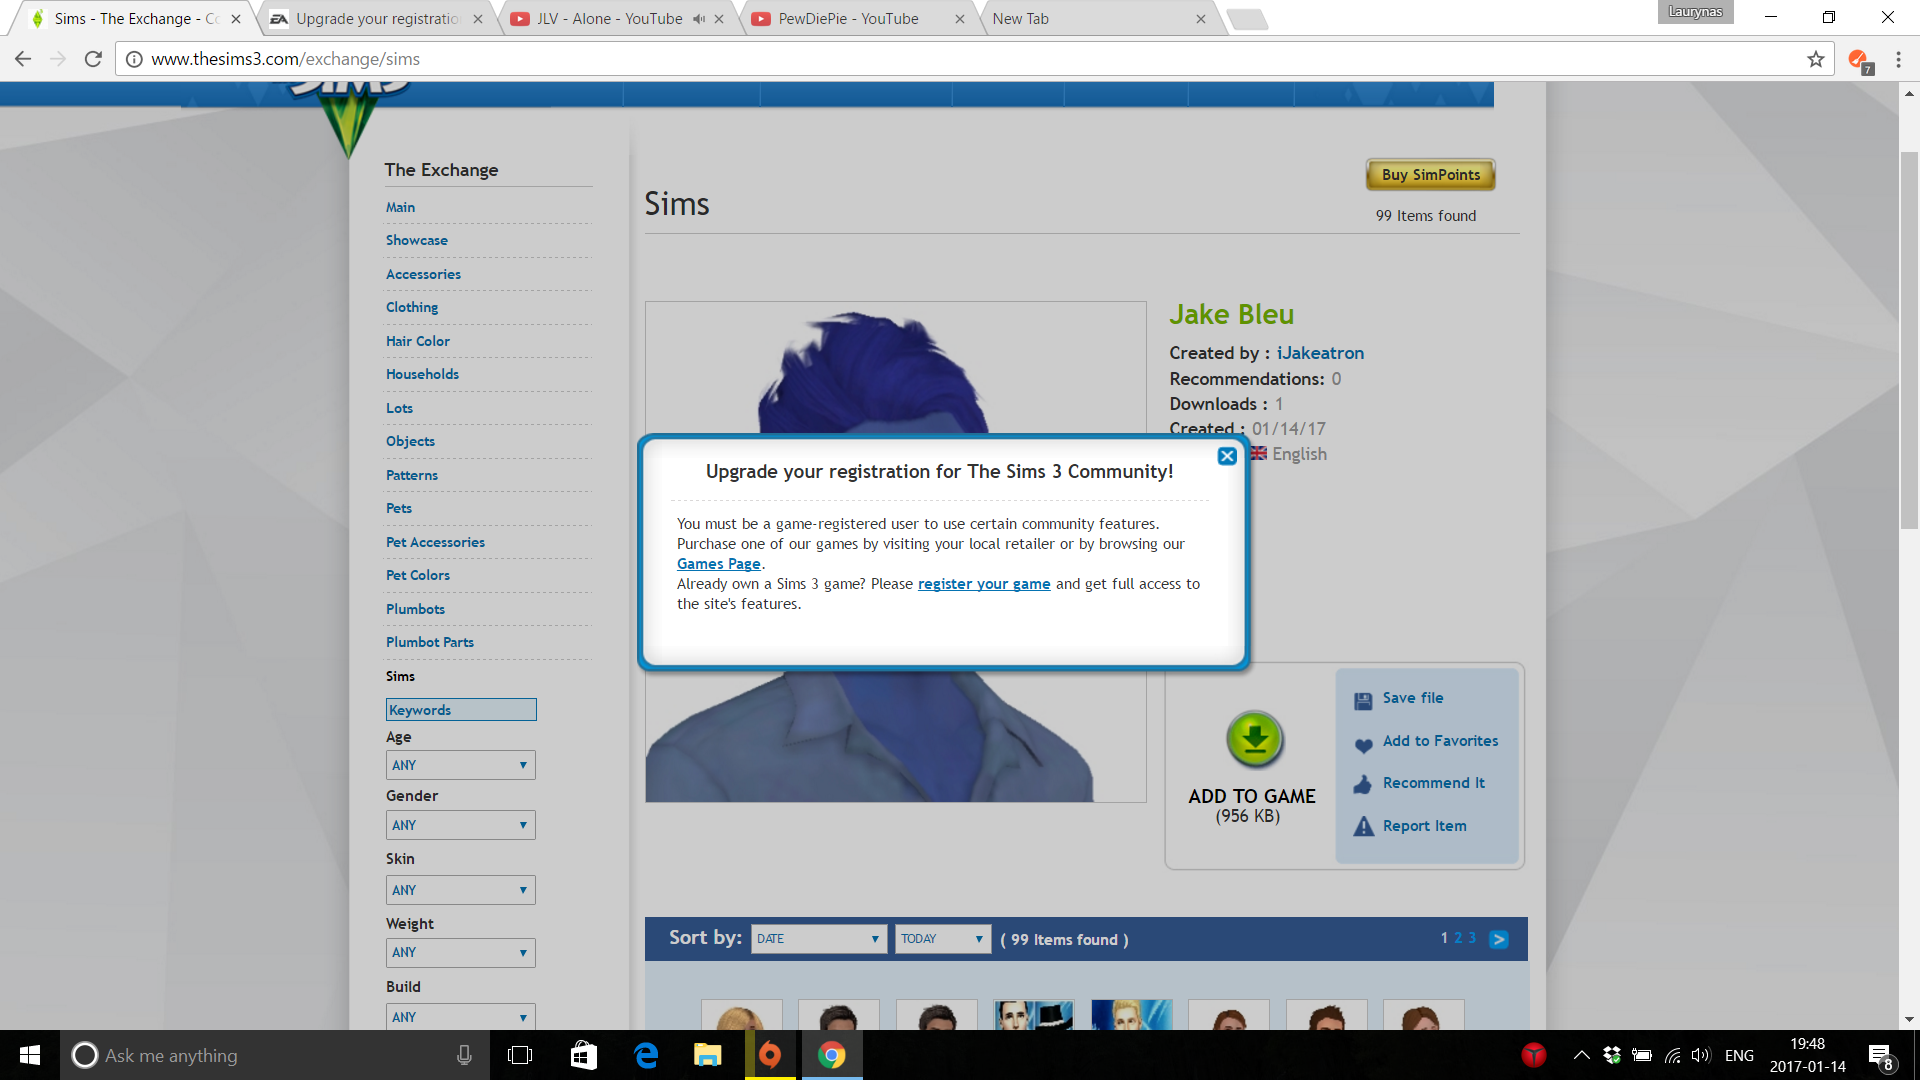 Upgrade your registration for The Sims 3 Community! problem